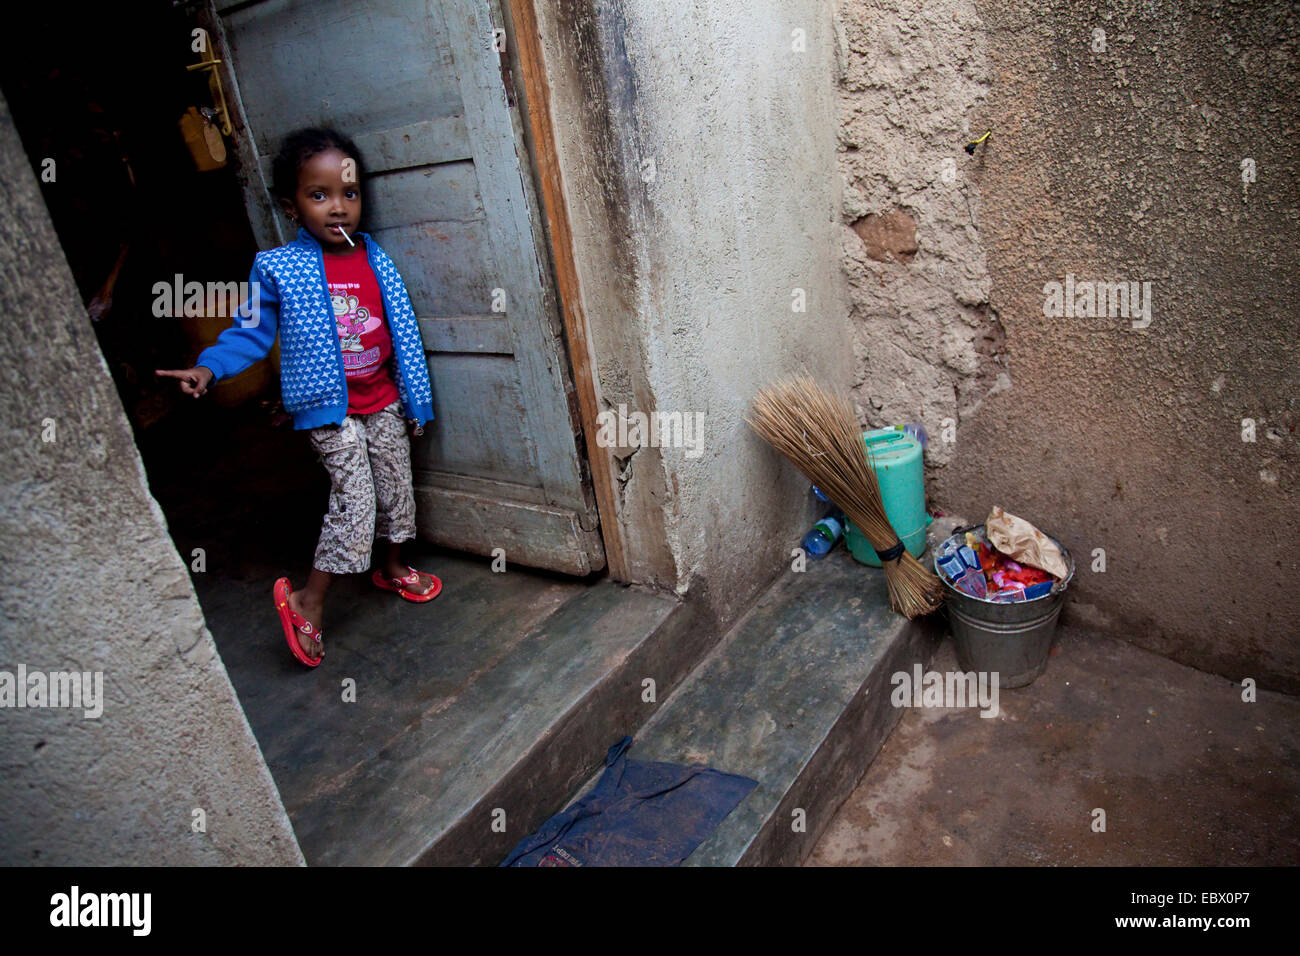 small girl in a poorer area of the capital city waves into the house as guests approach, Rwanda, Nyamirambo, Kigali - Stock Image